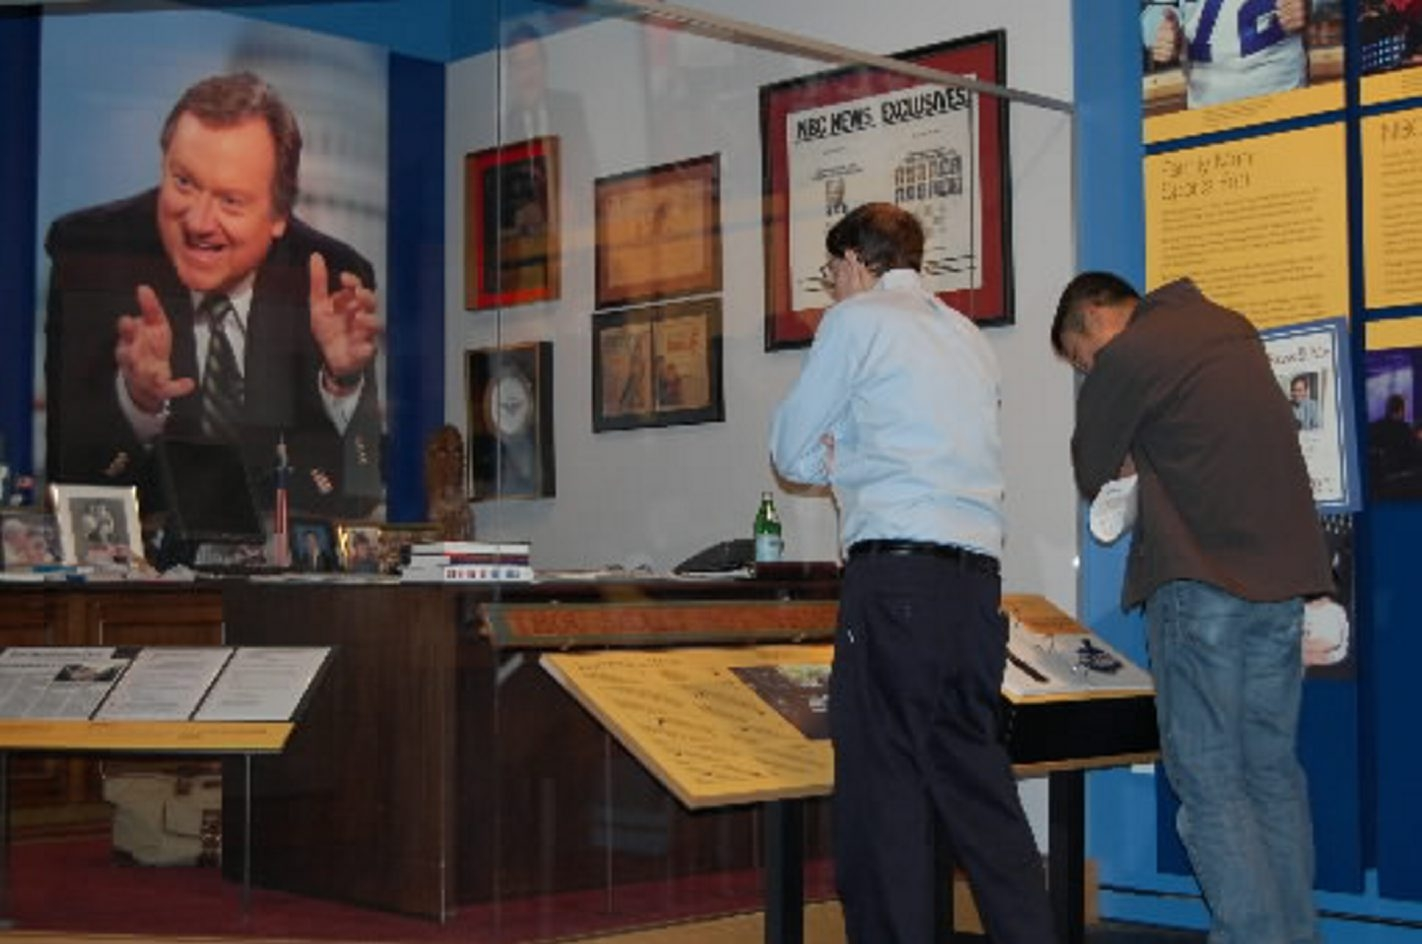 Tim Russert's image dominates re-creation of his office that will be a fixture in his hometown, beginning in September.